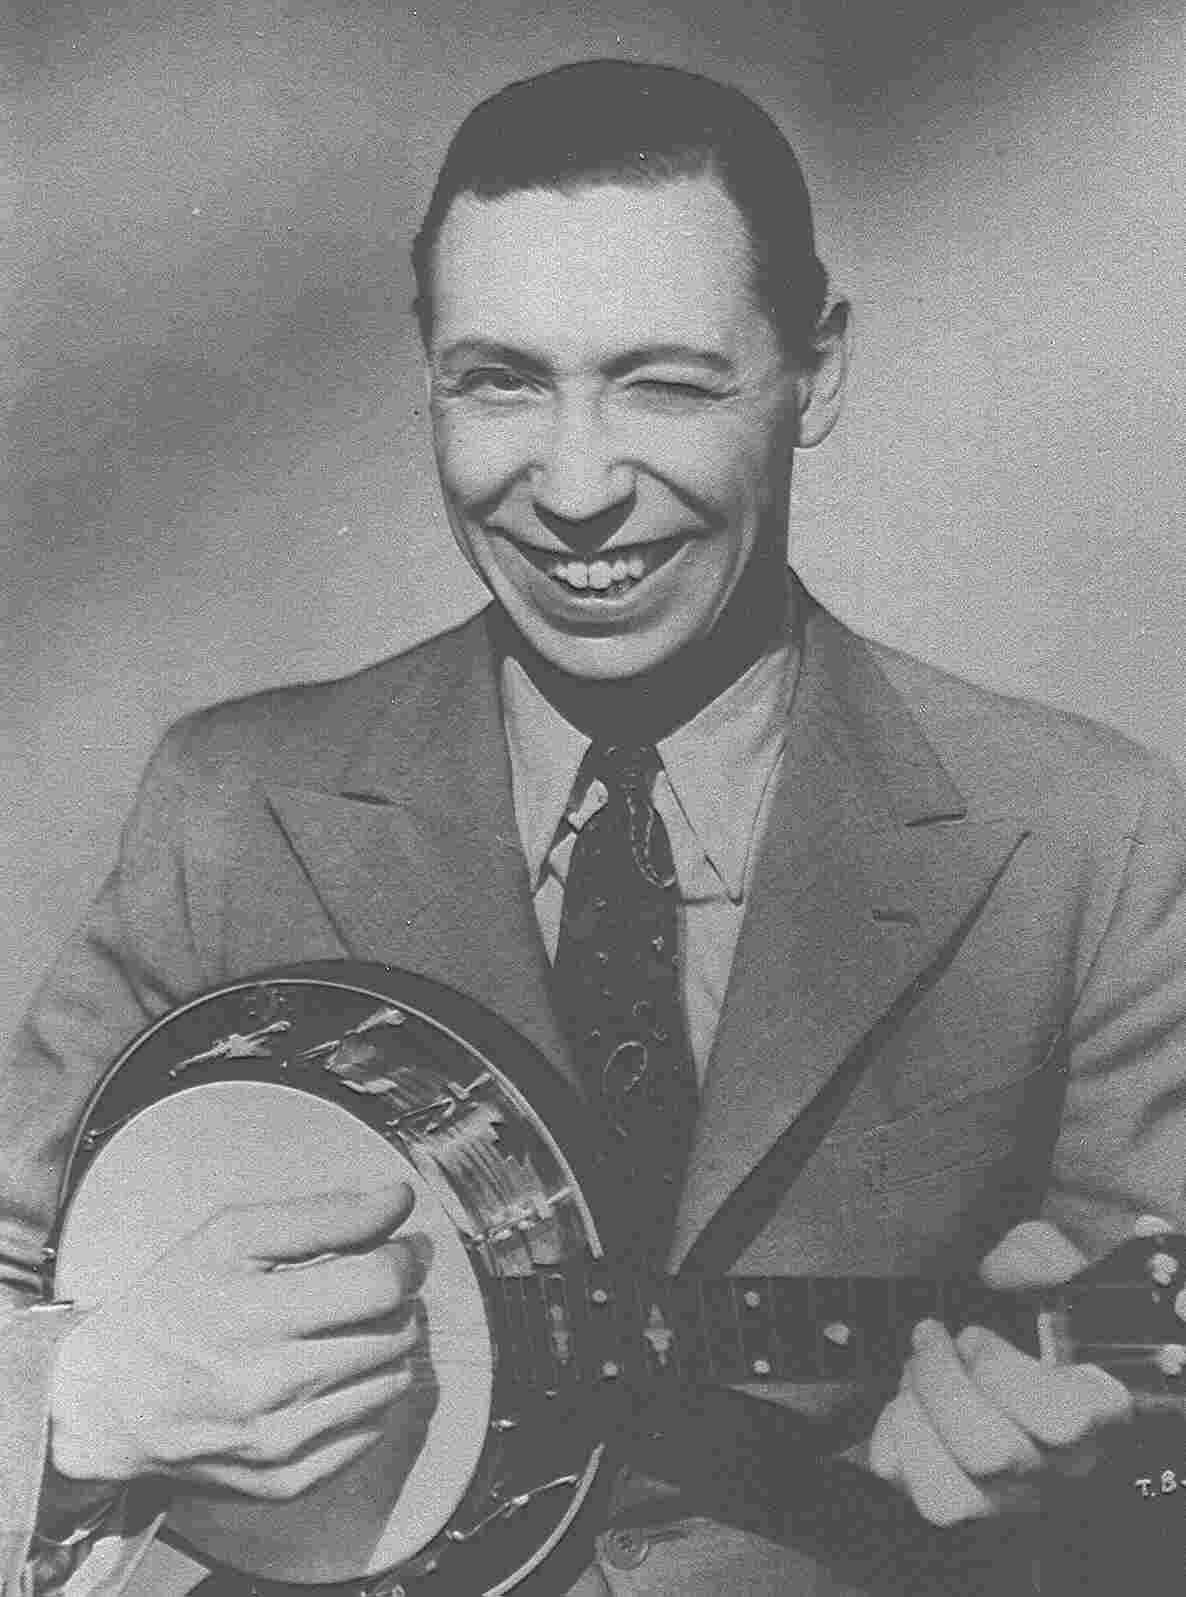 George Formby with Dallas 'E' ukulele banjo